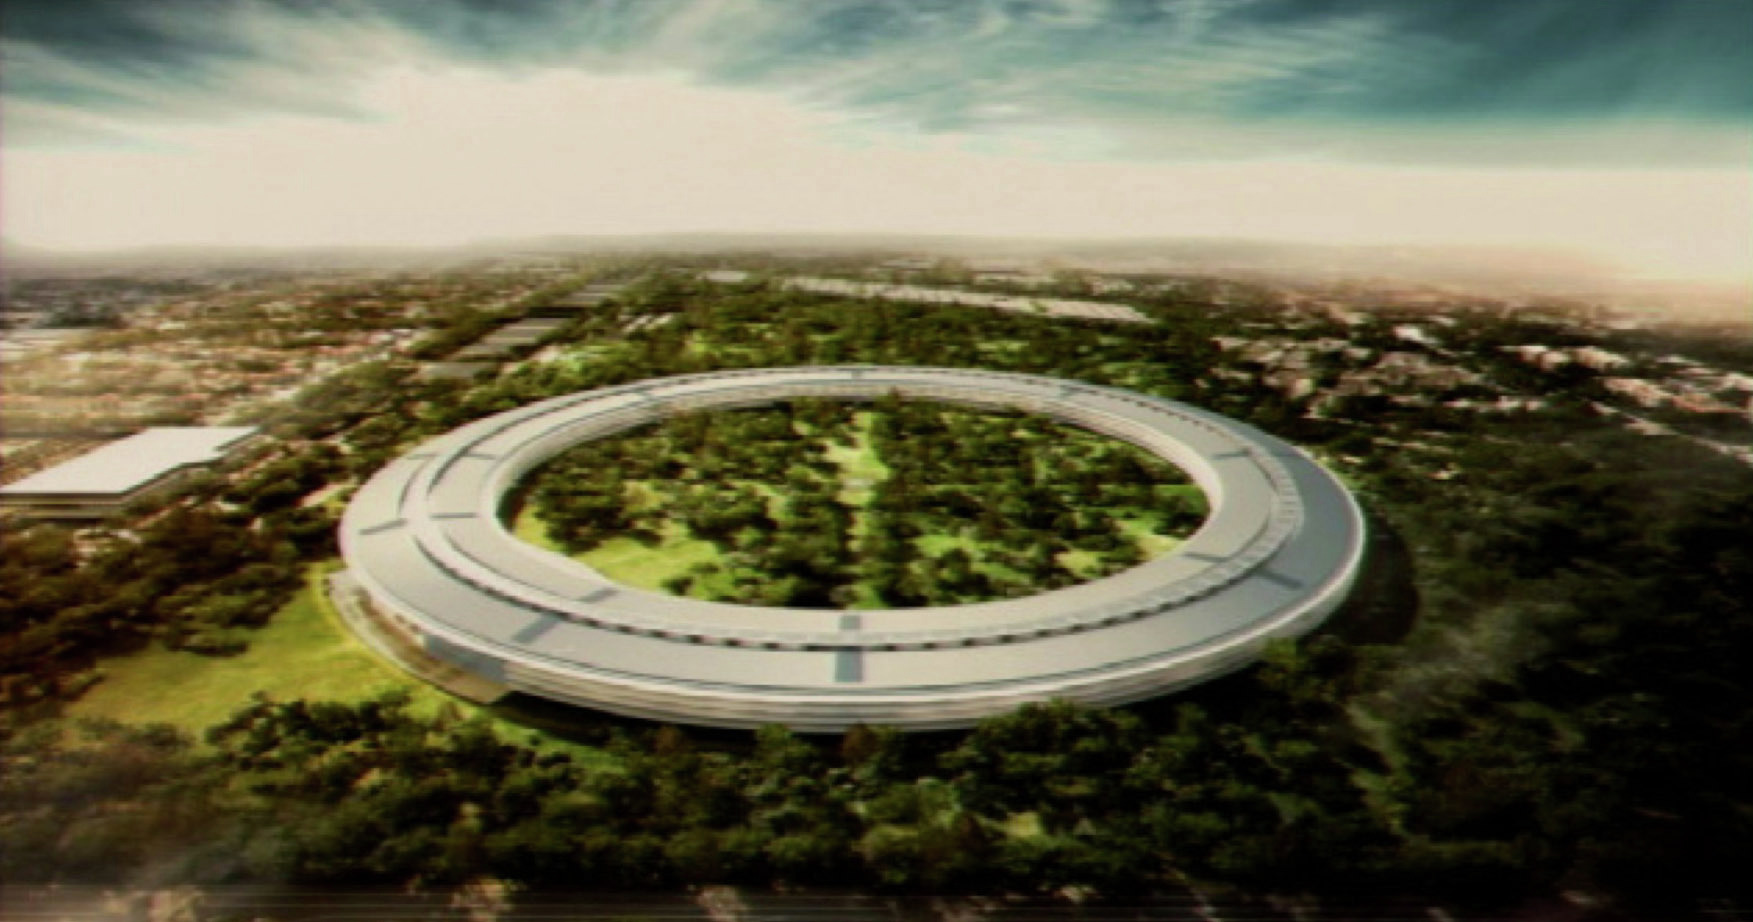 The Apple Campus in Cupertino ArchDaily